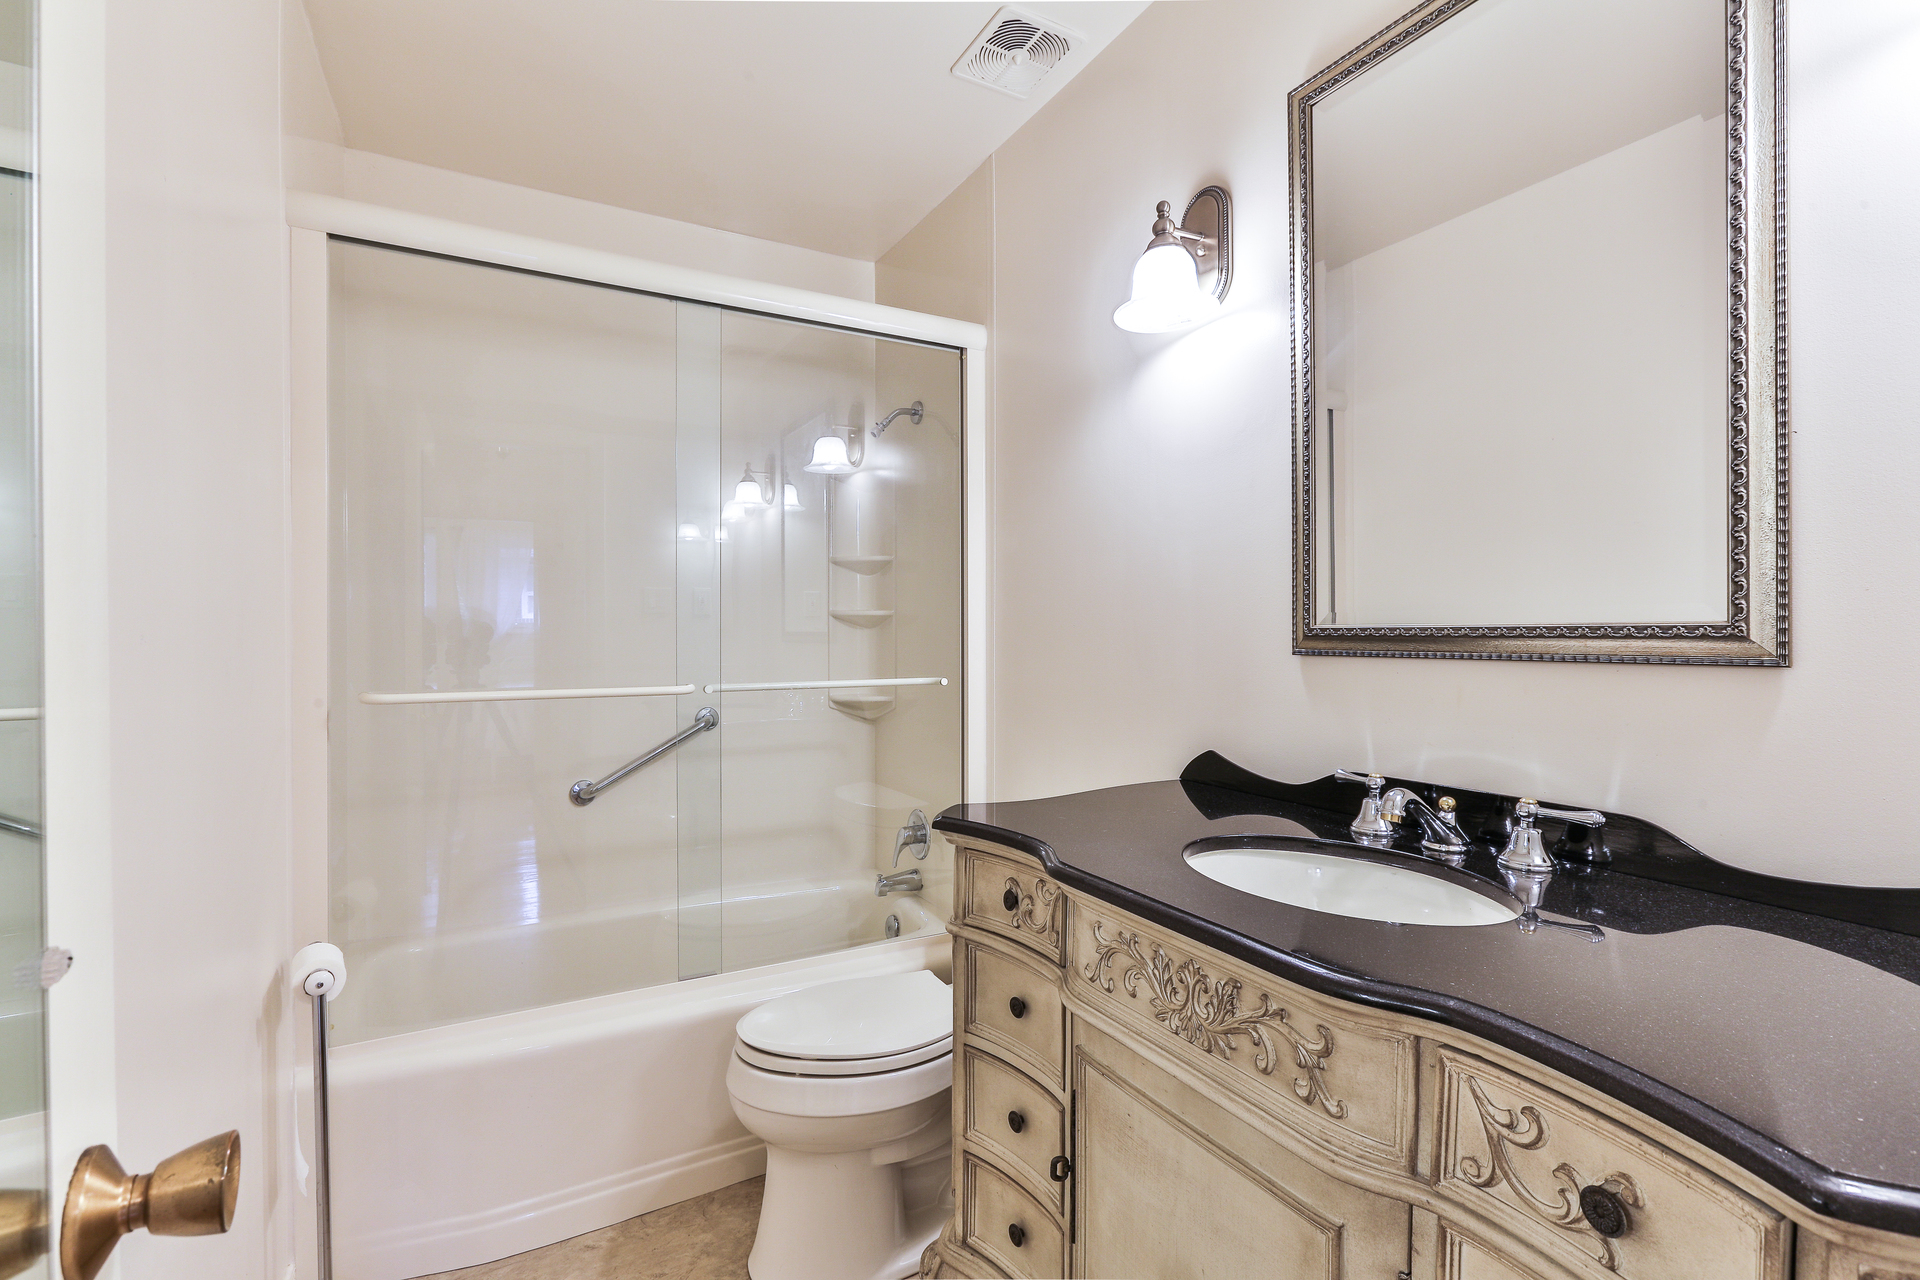 4 Piece Bathroom at 28 Dukinfield Crescent, Parkwoods-Donalda, Toronto